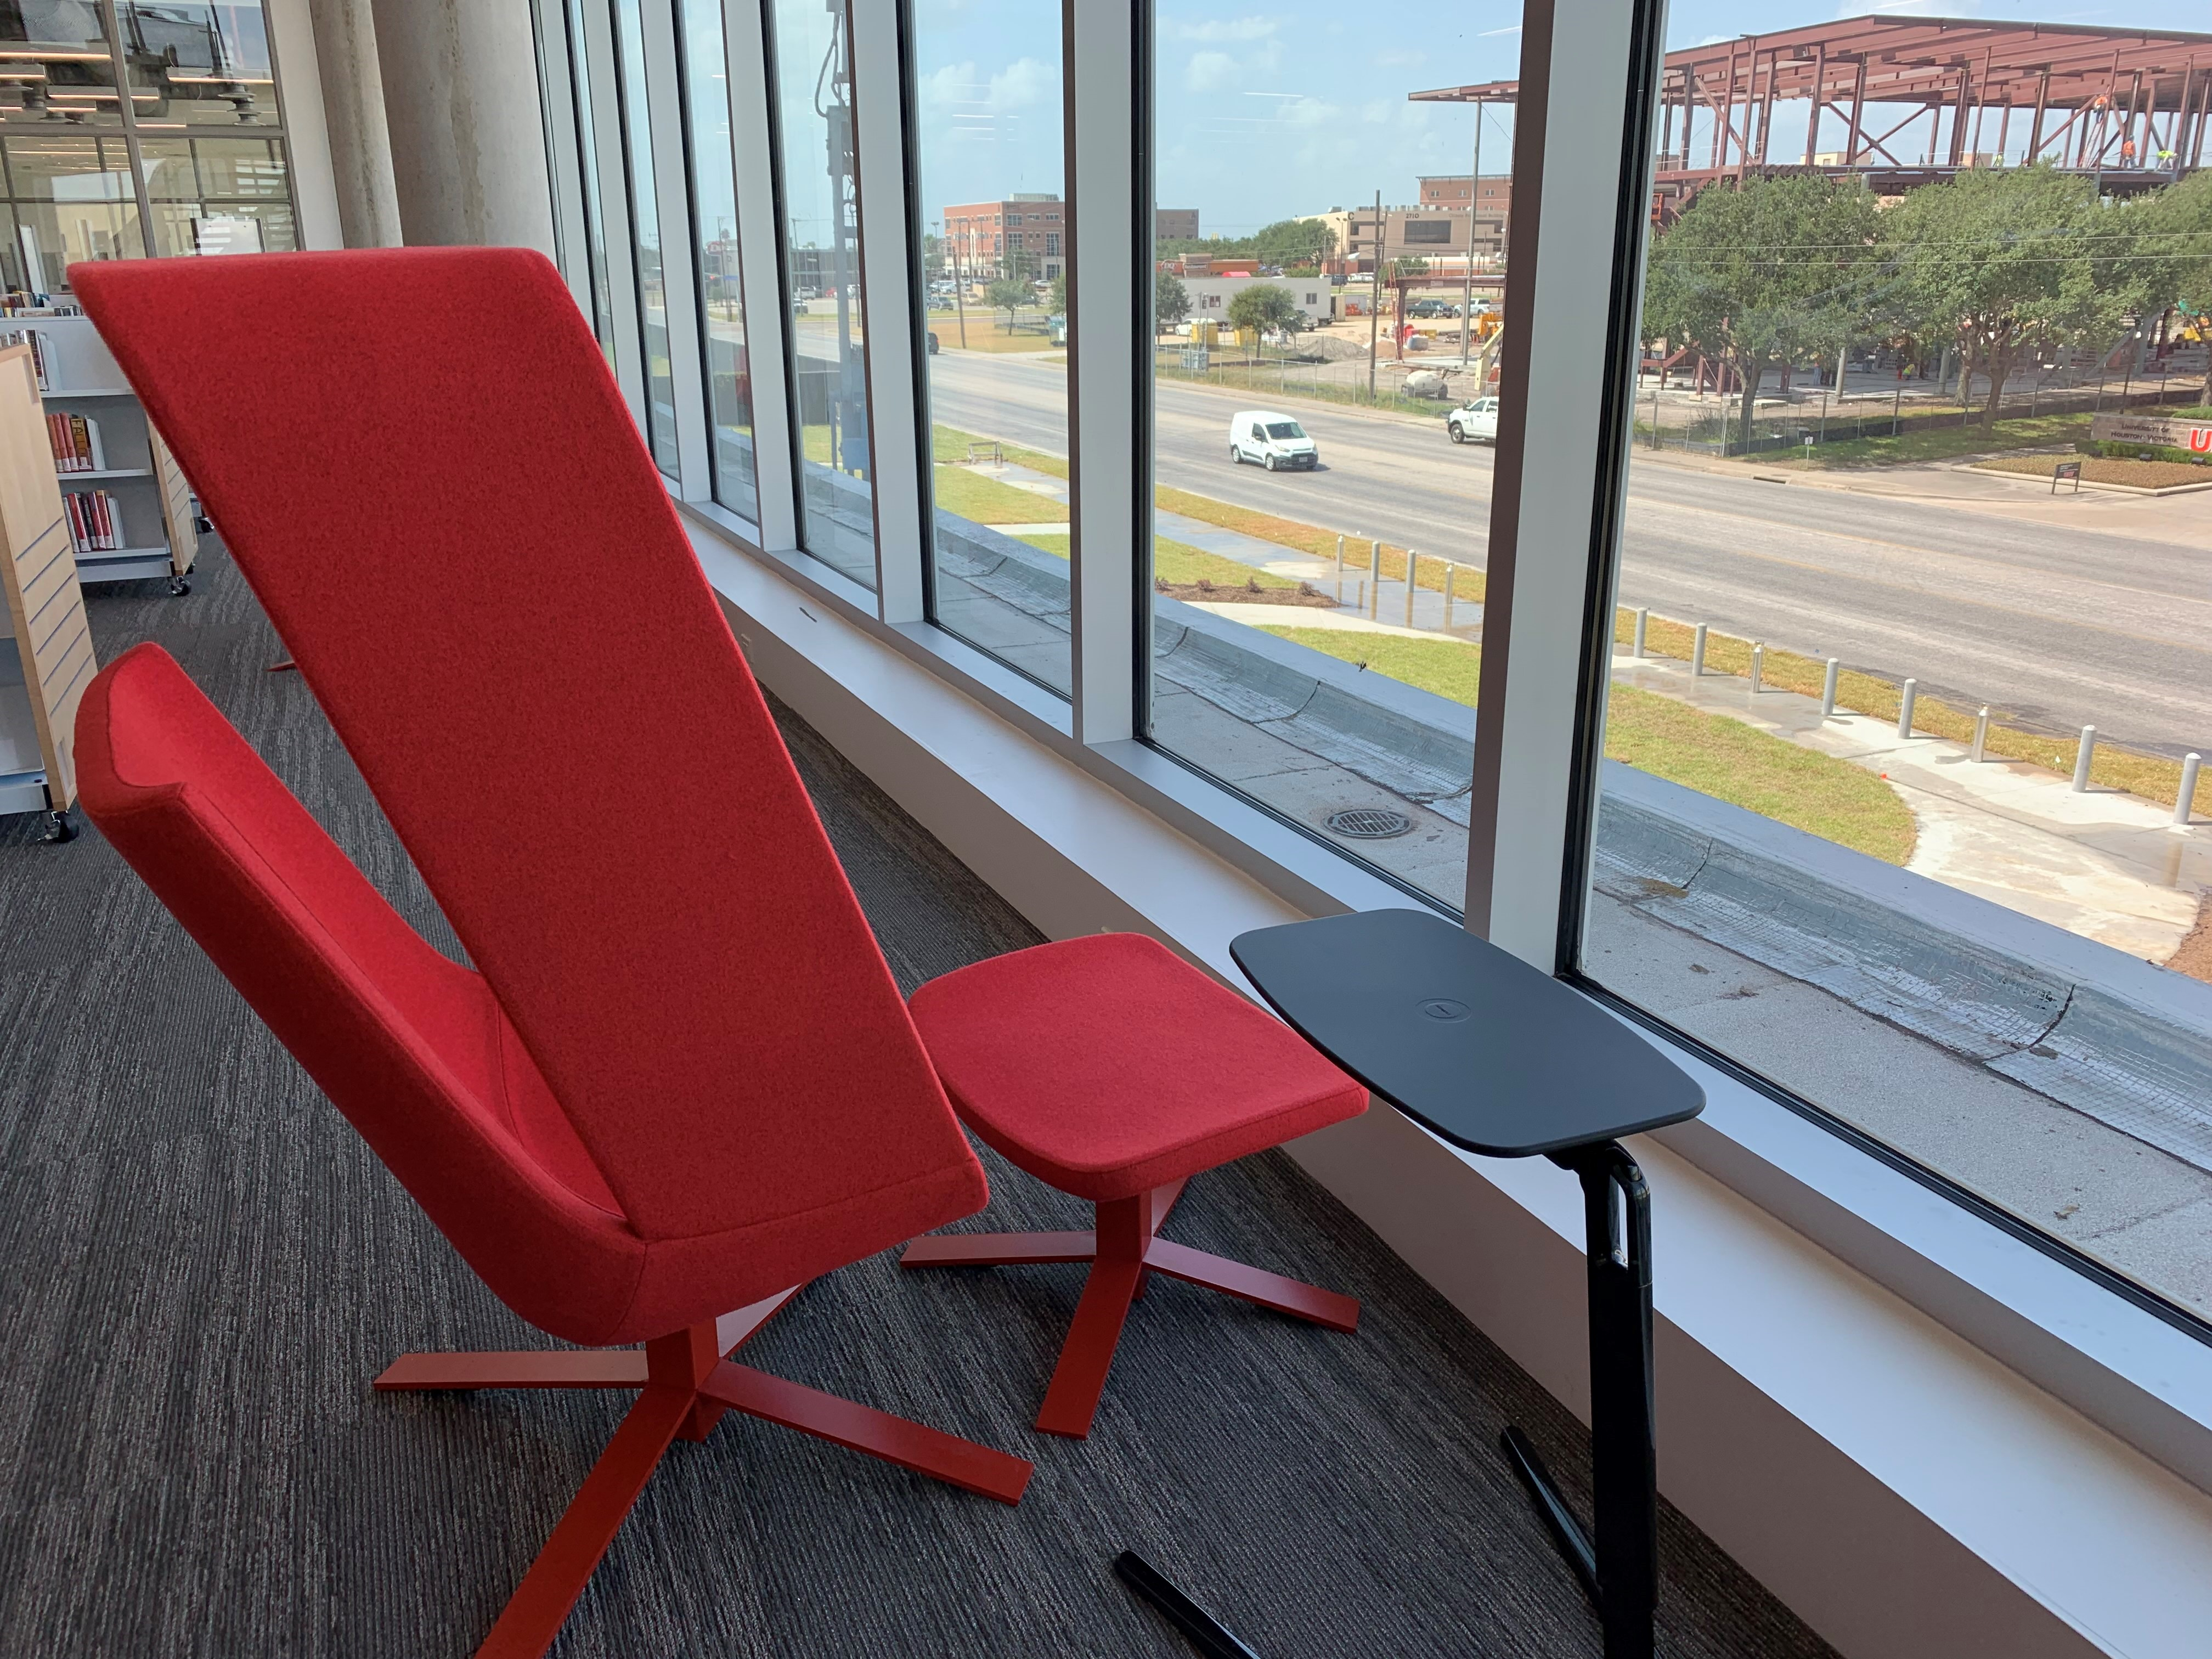 red chair next to a window